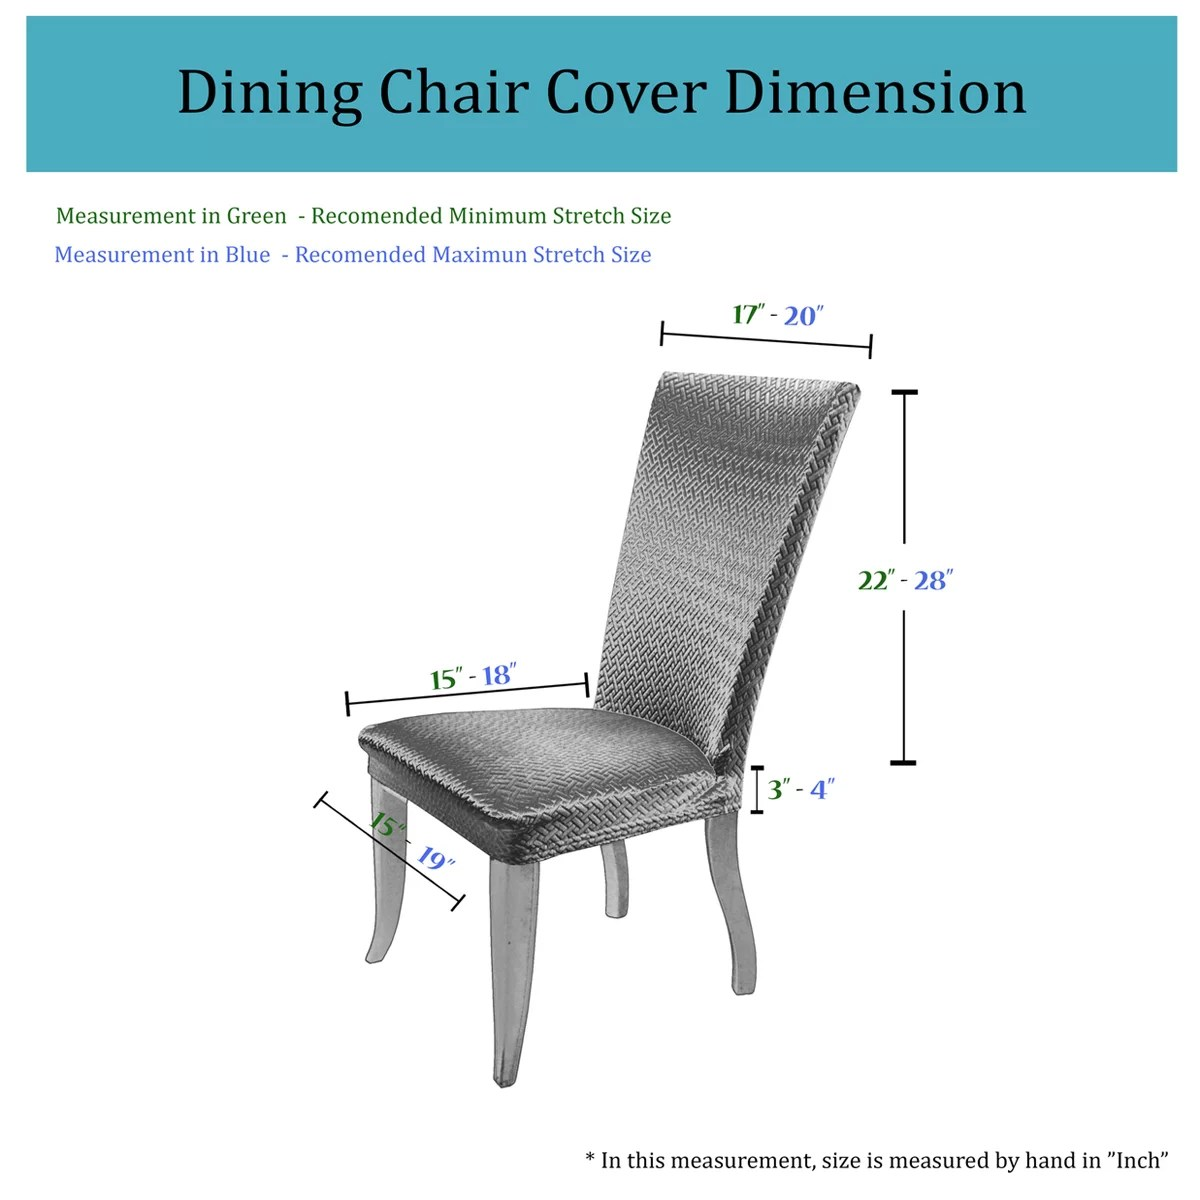 Dining Chair Dimensions Basket Weave Dining Chair Cover